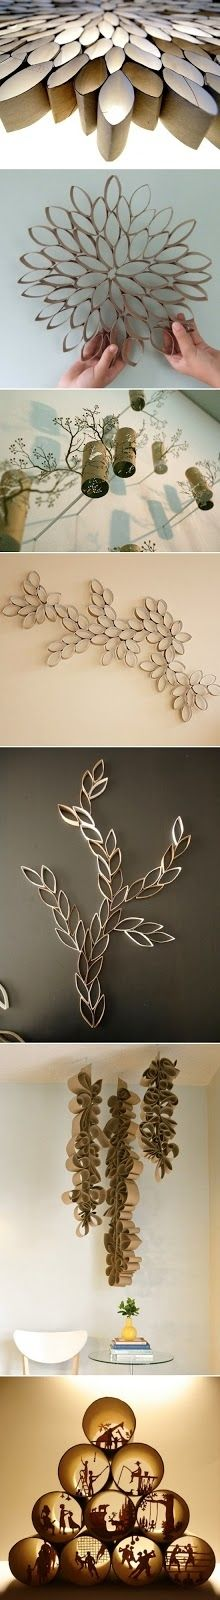 Toilet Paper Roll Art...my love affair with brown paper.